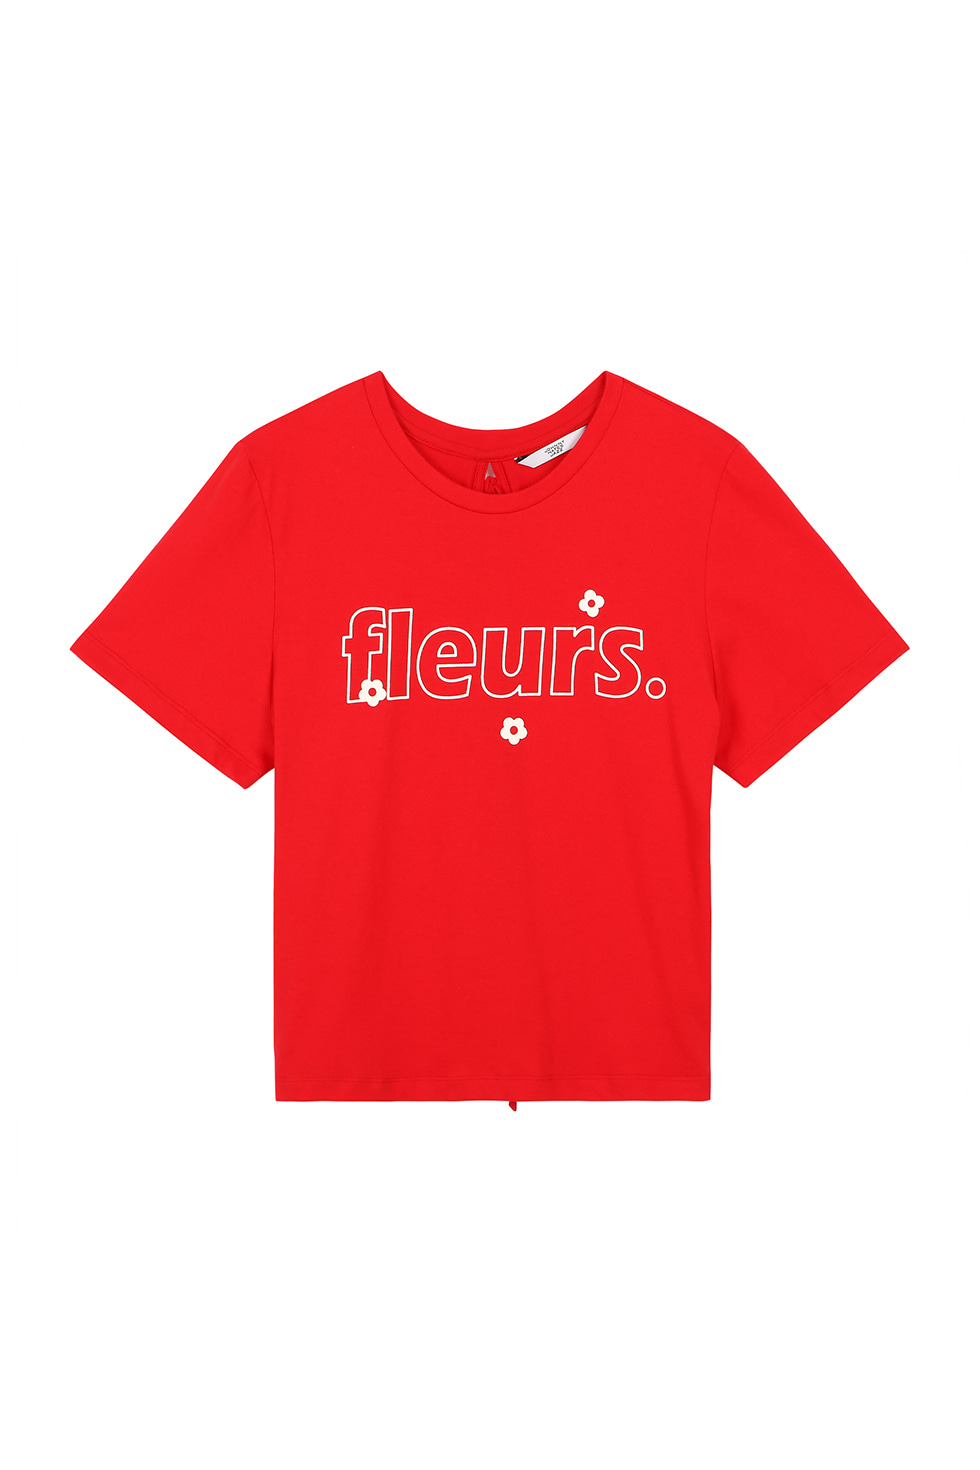 FLEURS T-SHIRTS - RED